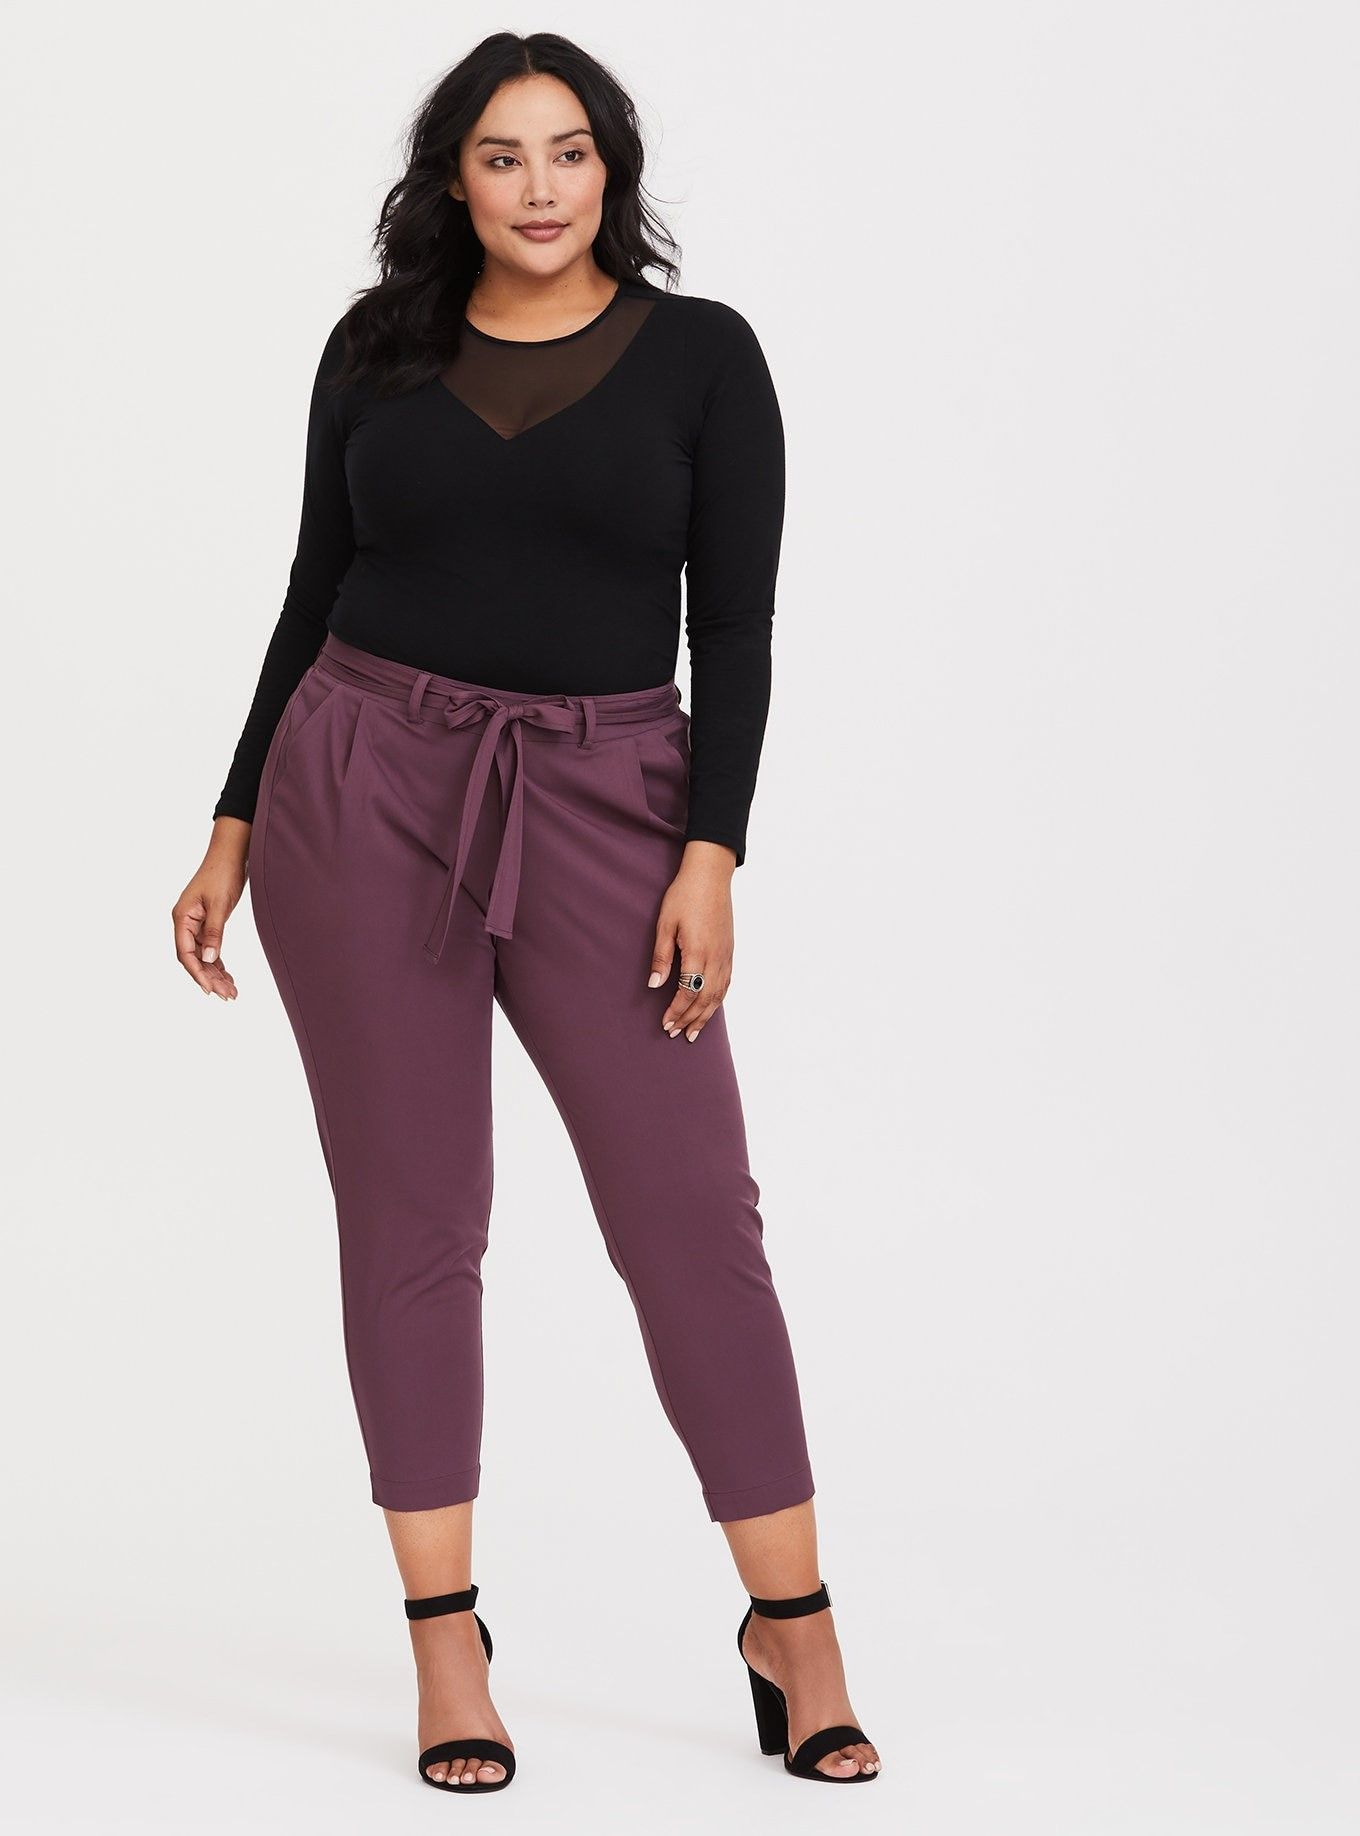 Big Size Tops For Women Size 22 Women Cute Clothes For Plus Size Girls Plus Sweaters